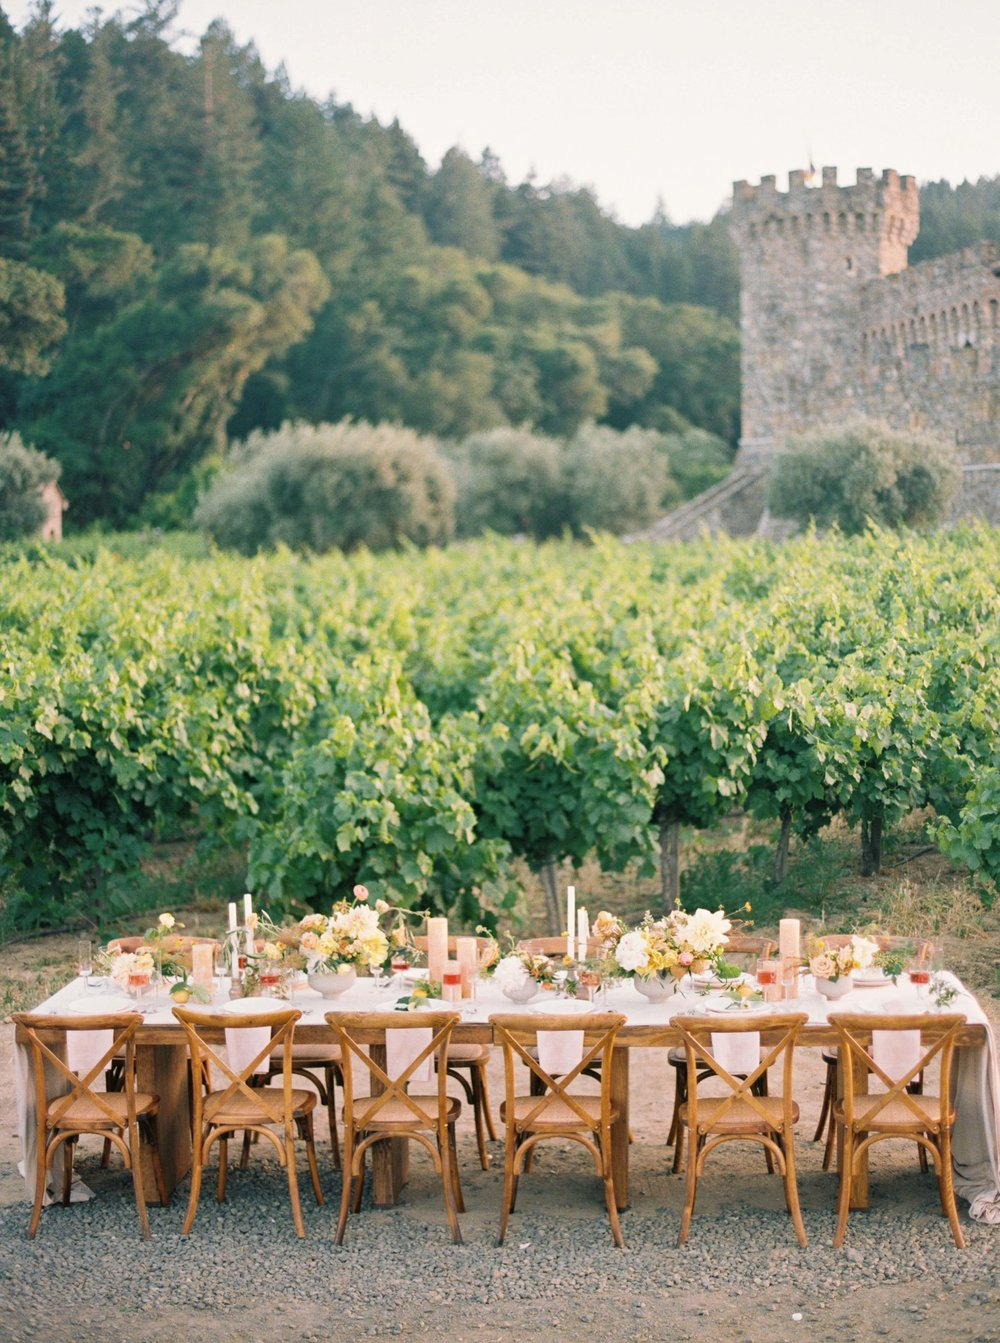 064napa_wedding_photographer_and_videographer_destination_and_elopement_photography.jpg